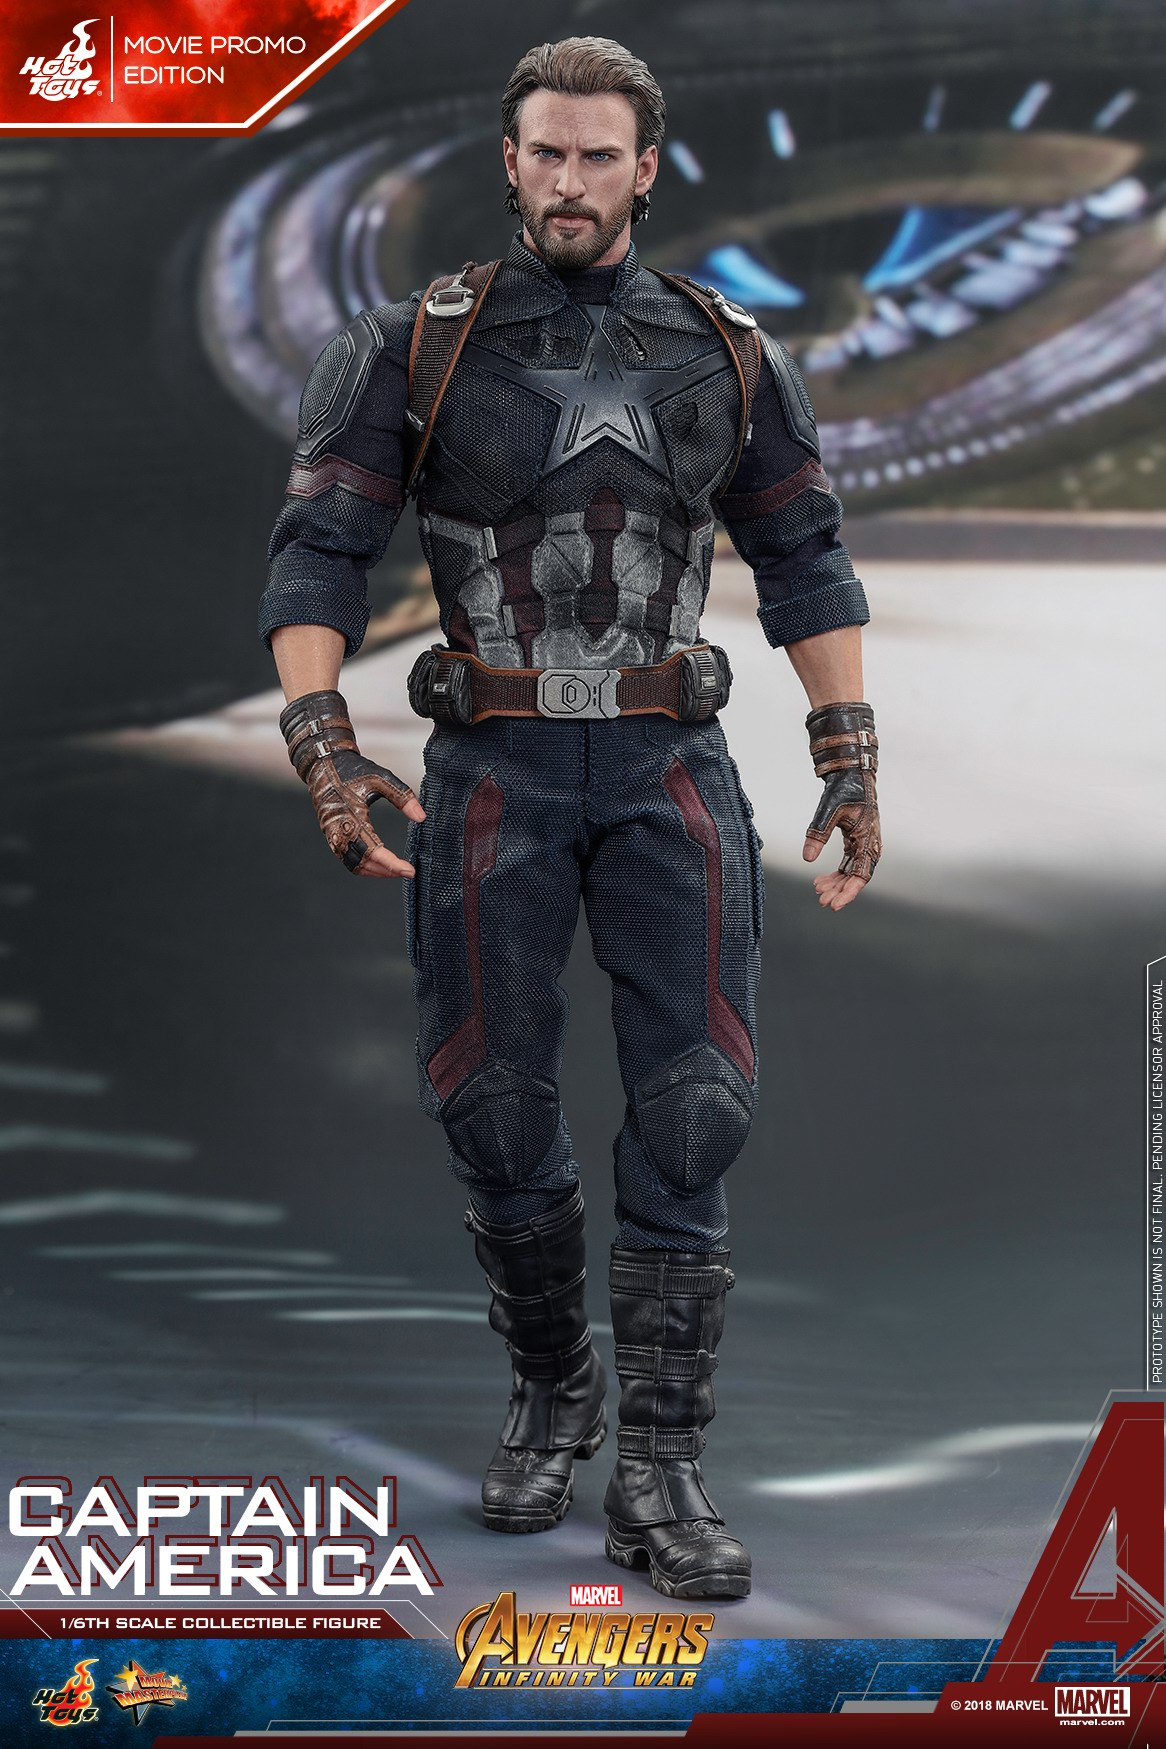 Hot Toys - AIW - Captain America collectible figure (Movie Promo)_PR1.jpg